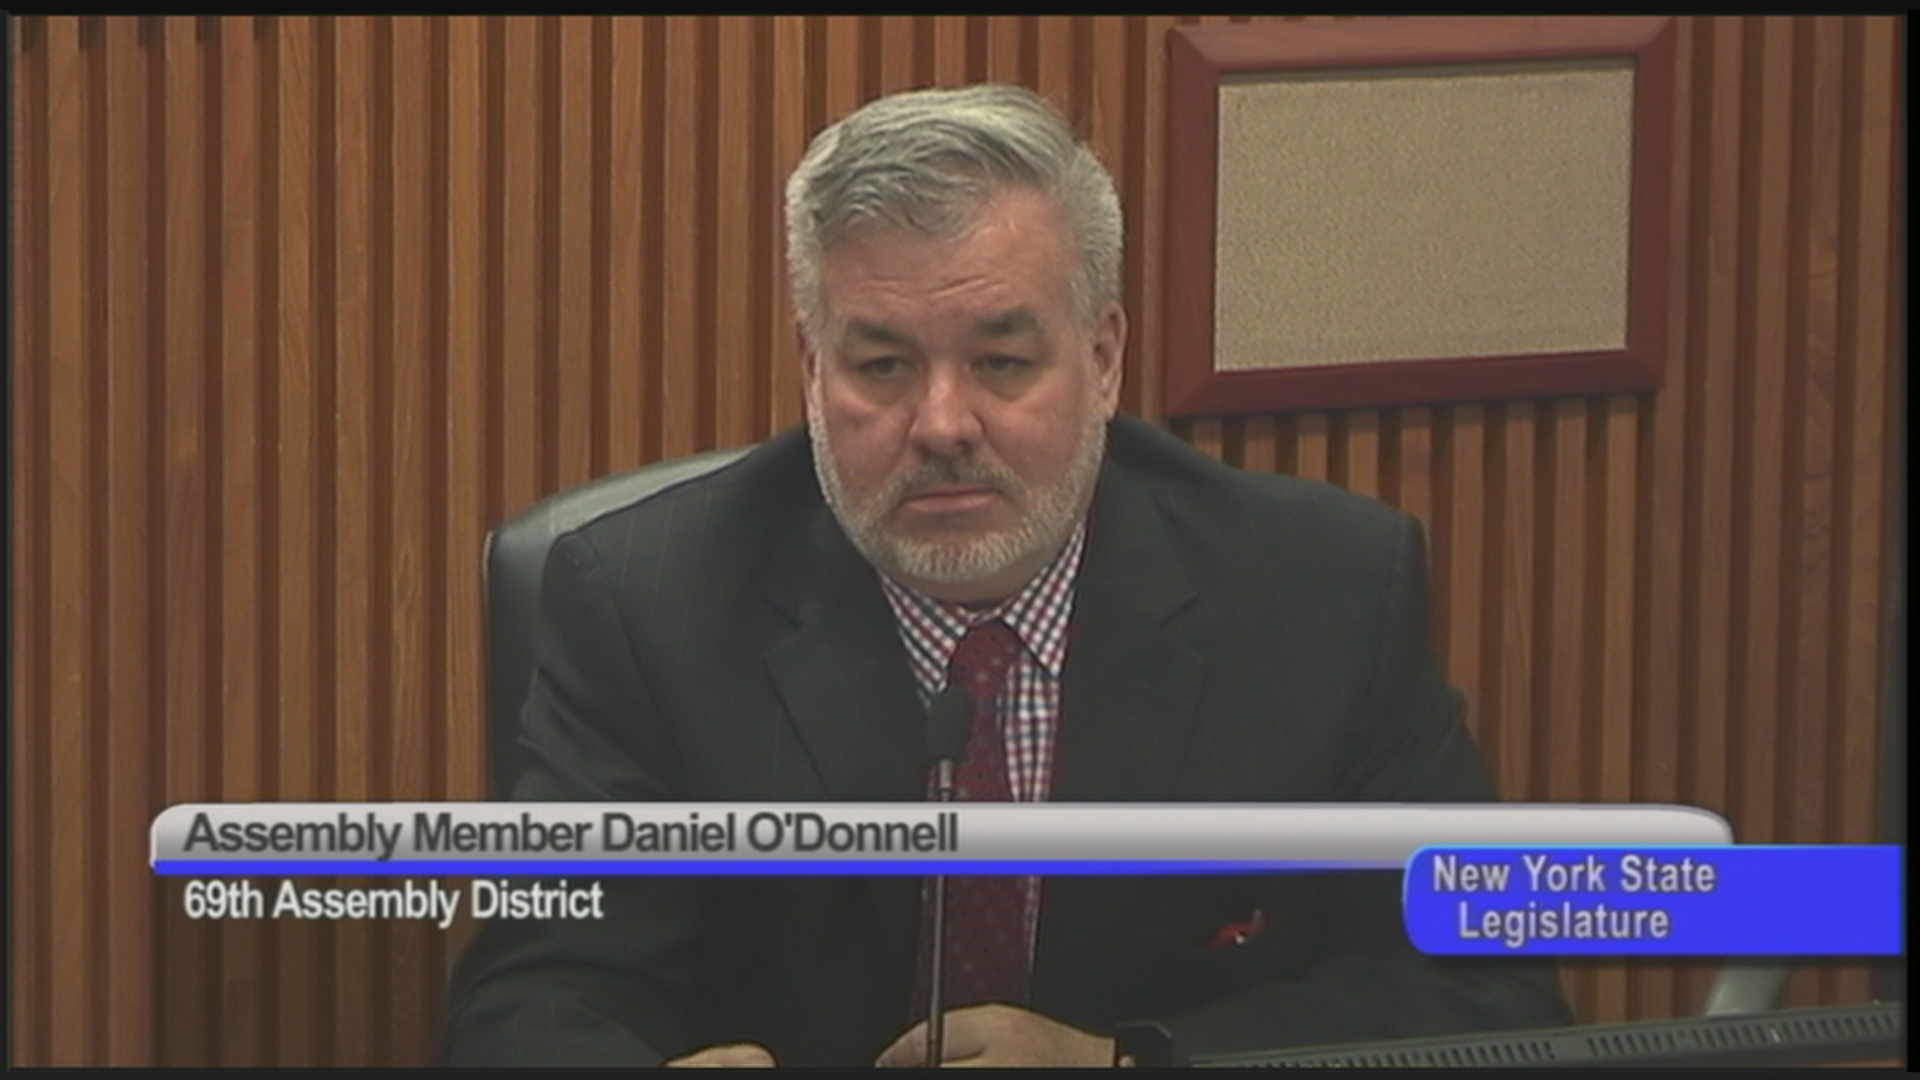 Assemblymember O'Donnell On Construction Near Public Schools